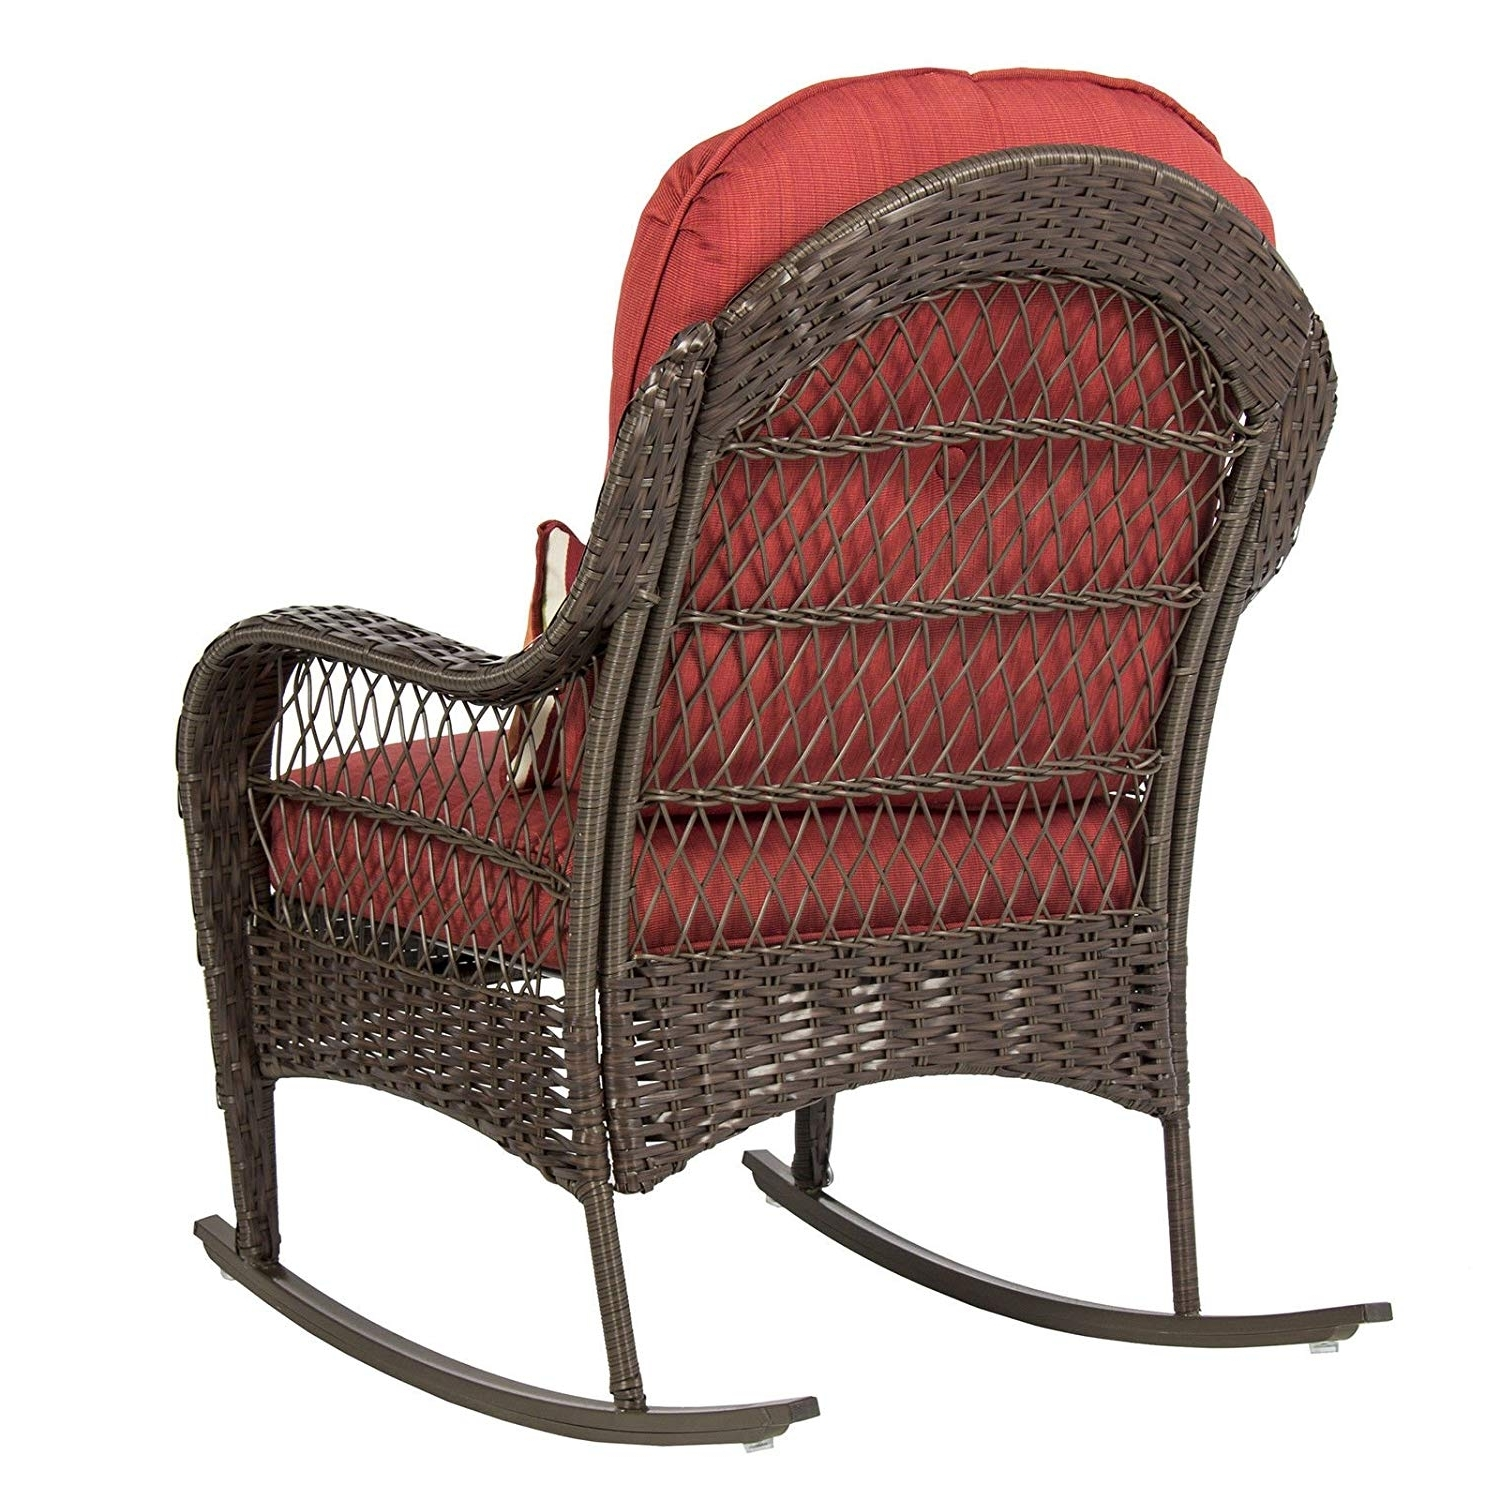 Amazon : Best Choice Products Wicker Rocking Chair Patio Porch Within Latest Used Patio Rocking Chairs (View 3 of 15)